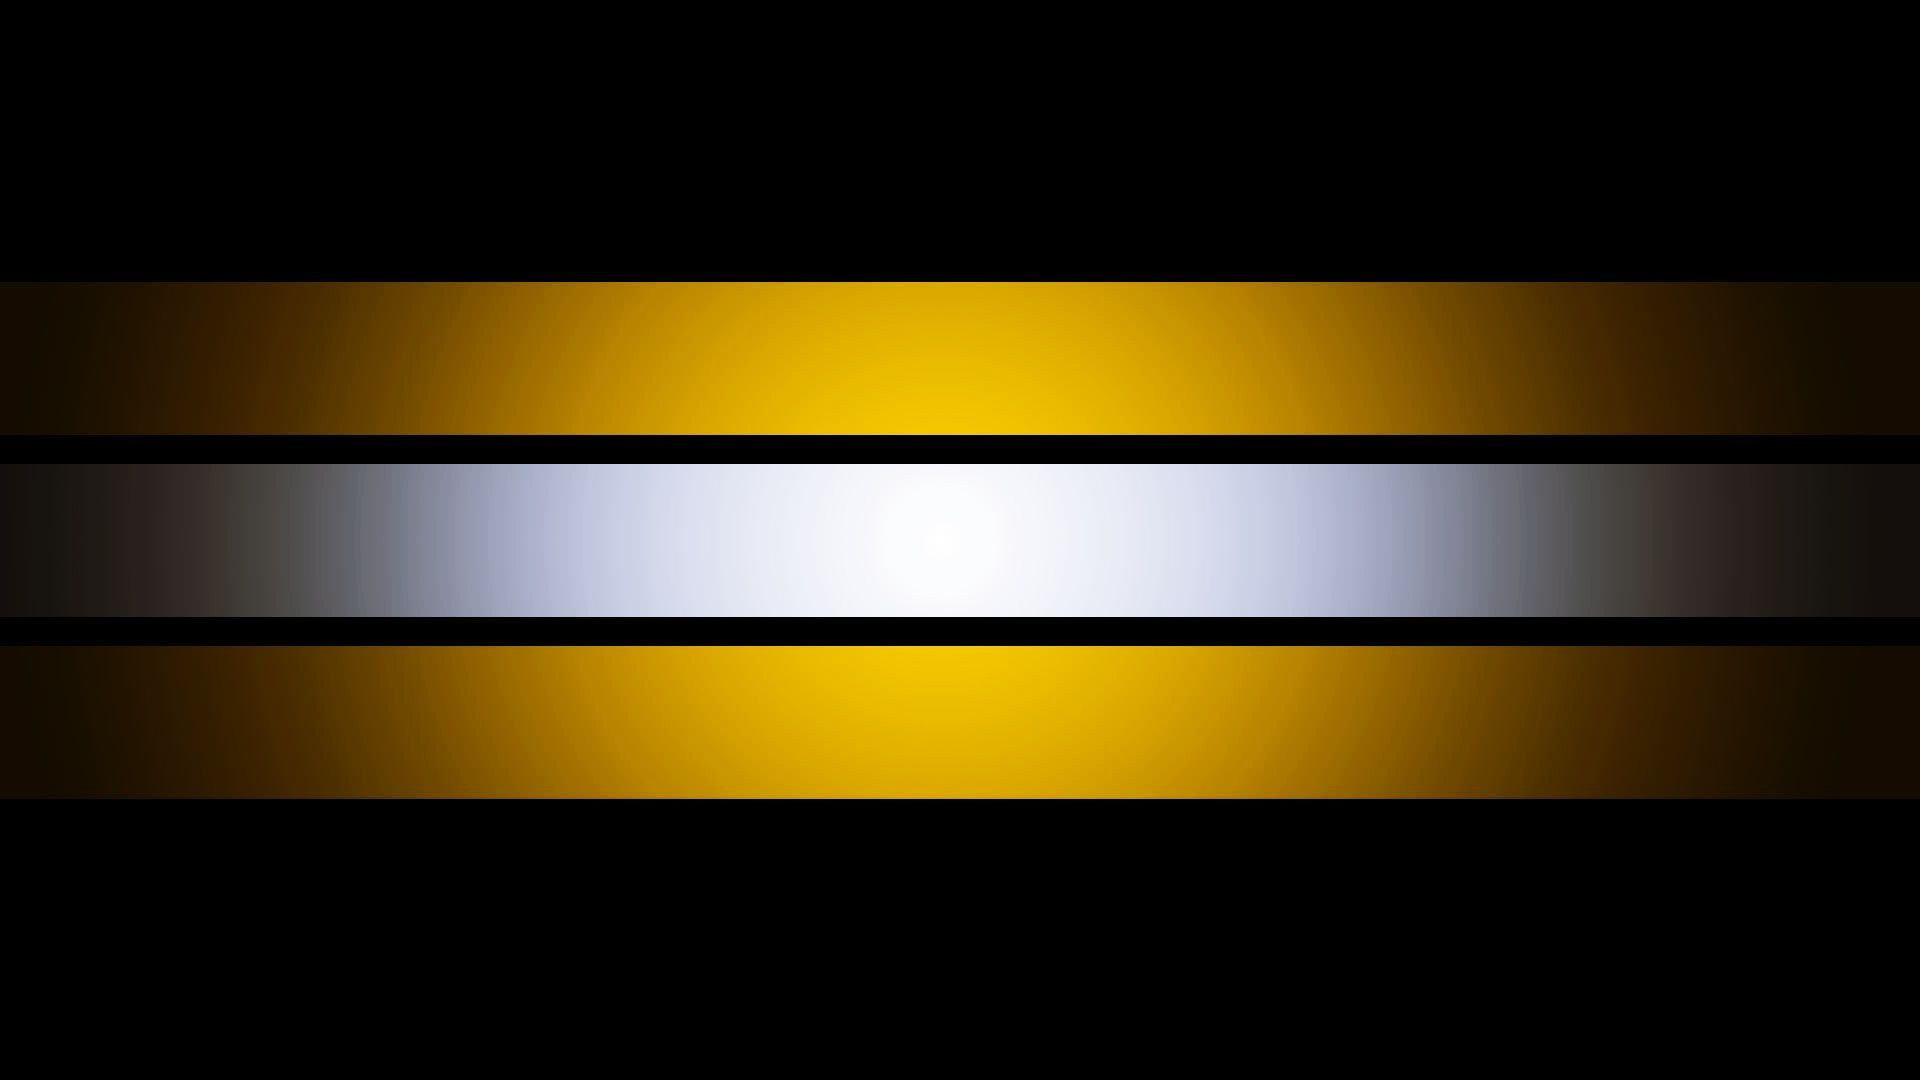 Watch More Like Black And Yellow Abstract Wallpaper White Wallpaper Black Background Wallpaper Wallpaper